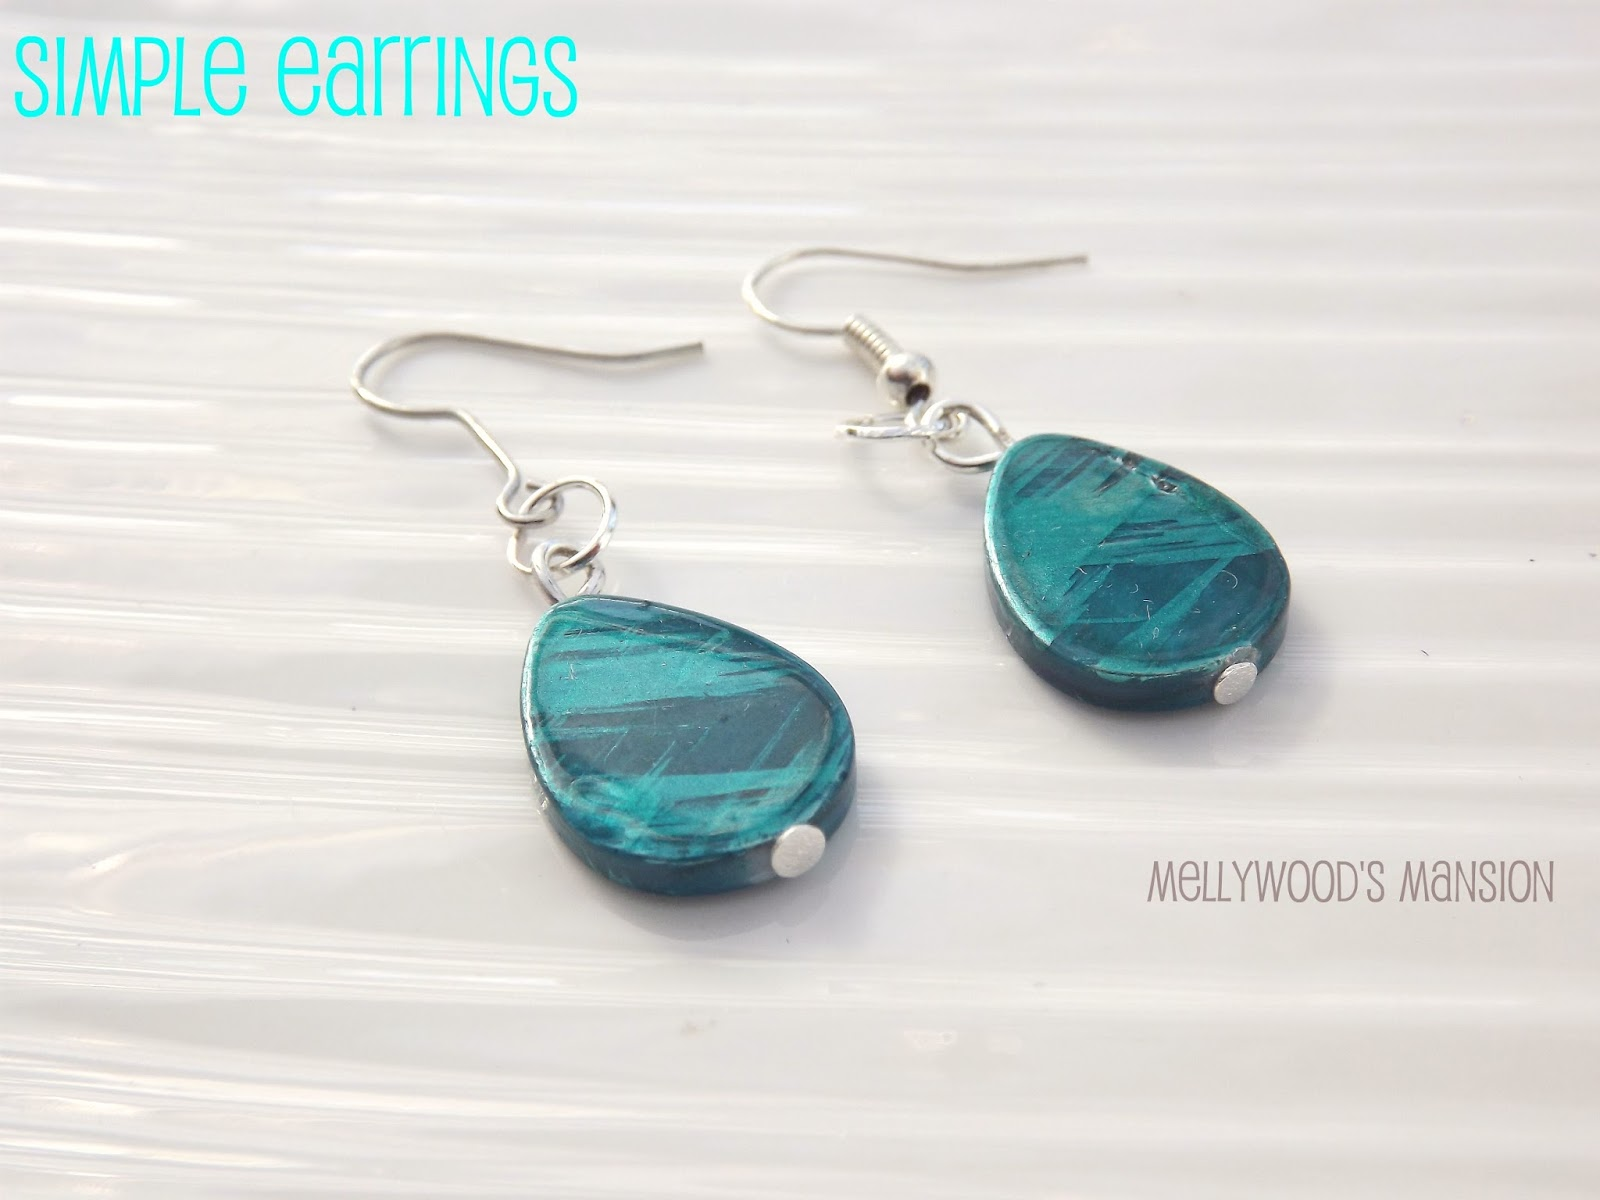 Simple DIY Earrings by Mellywood Mansion - The Benson Street